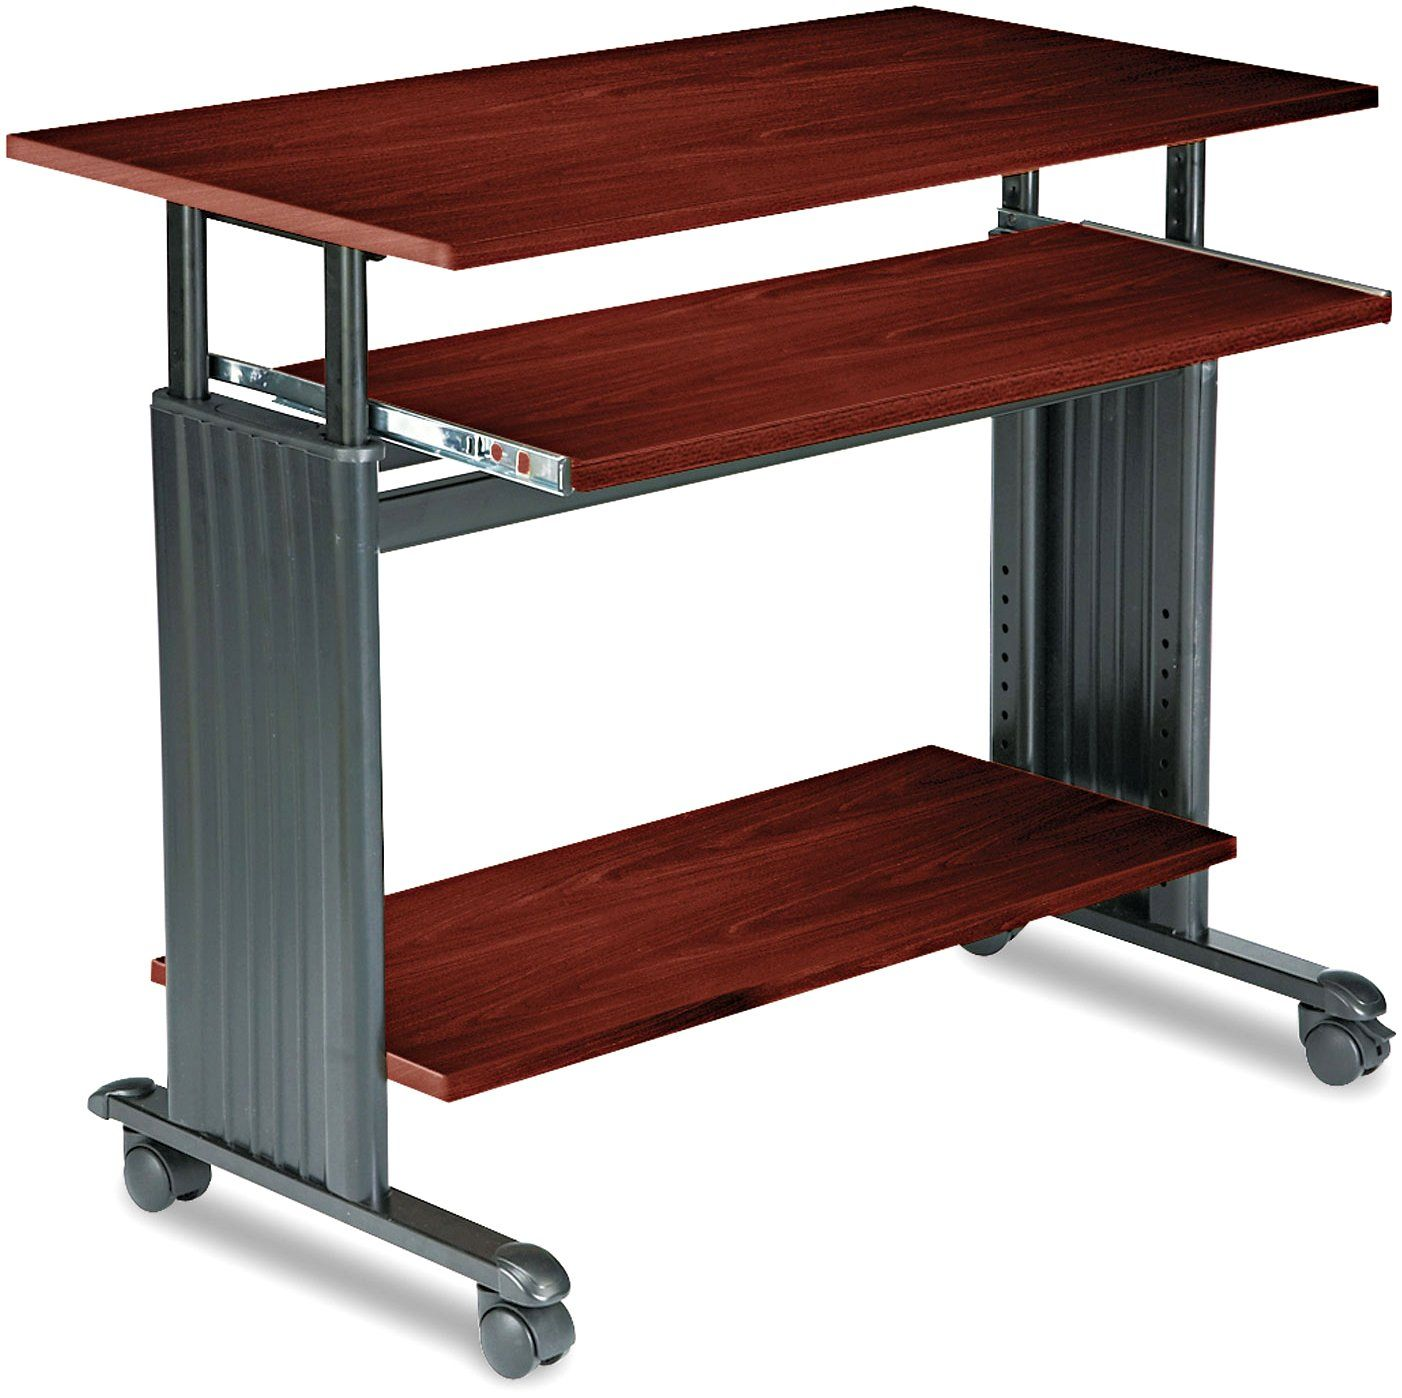 Cherry Safco Products 1926CY Muv Adjustable-Height Desk